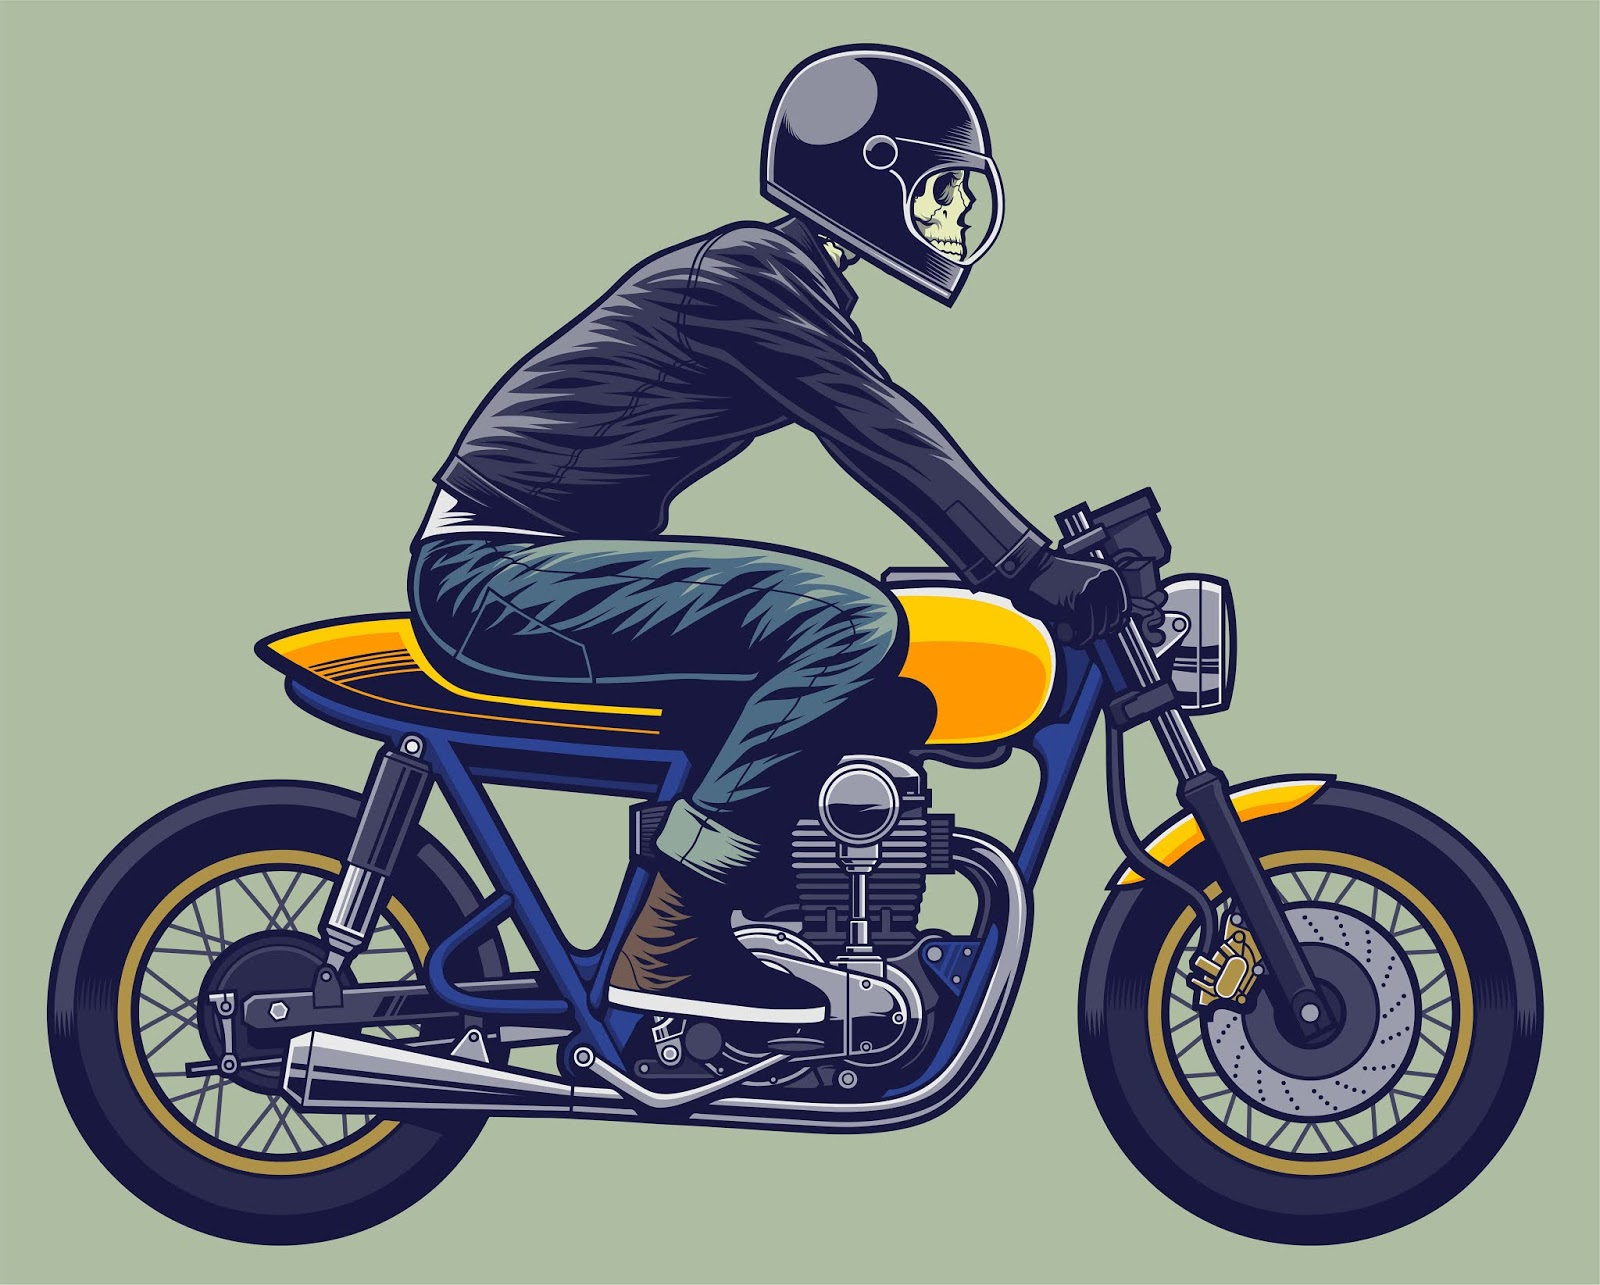 Skull Rider Illustration Skeleton Motorcycle Free Download Vector CDR, AI, EPS and PNG Formats